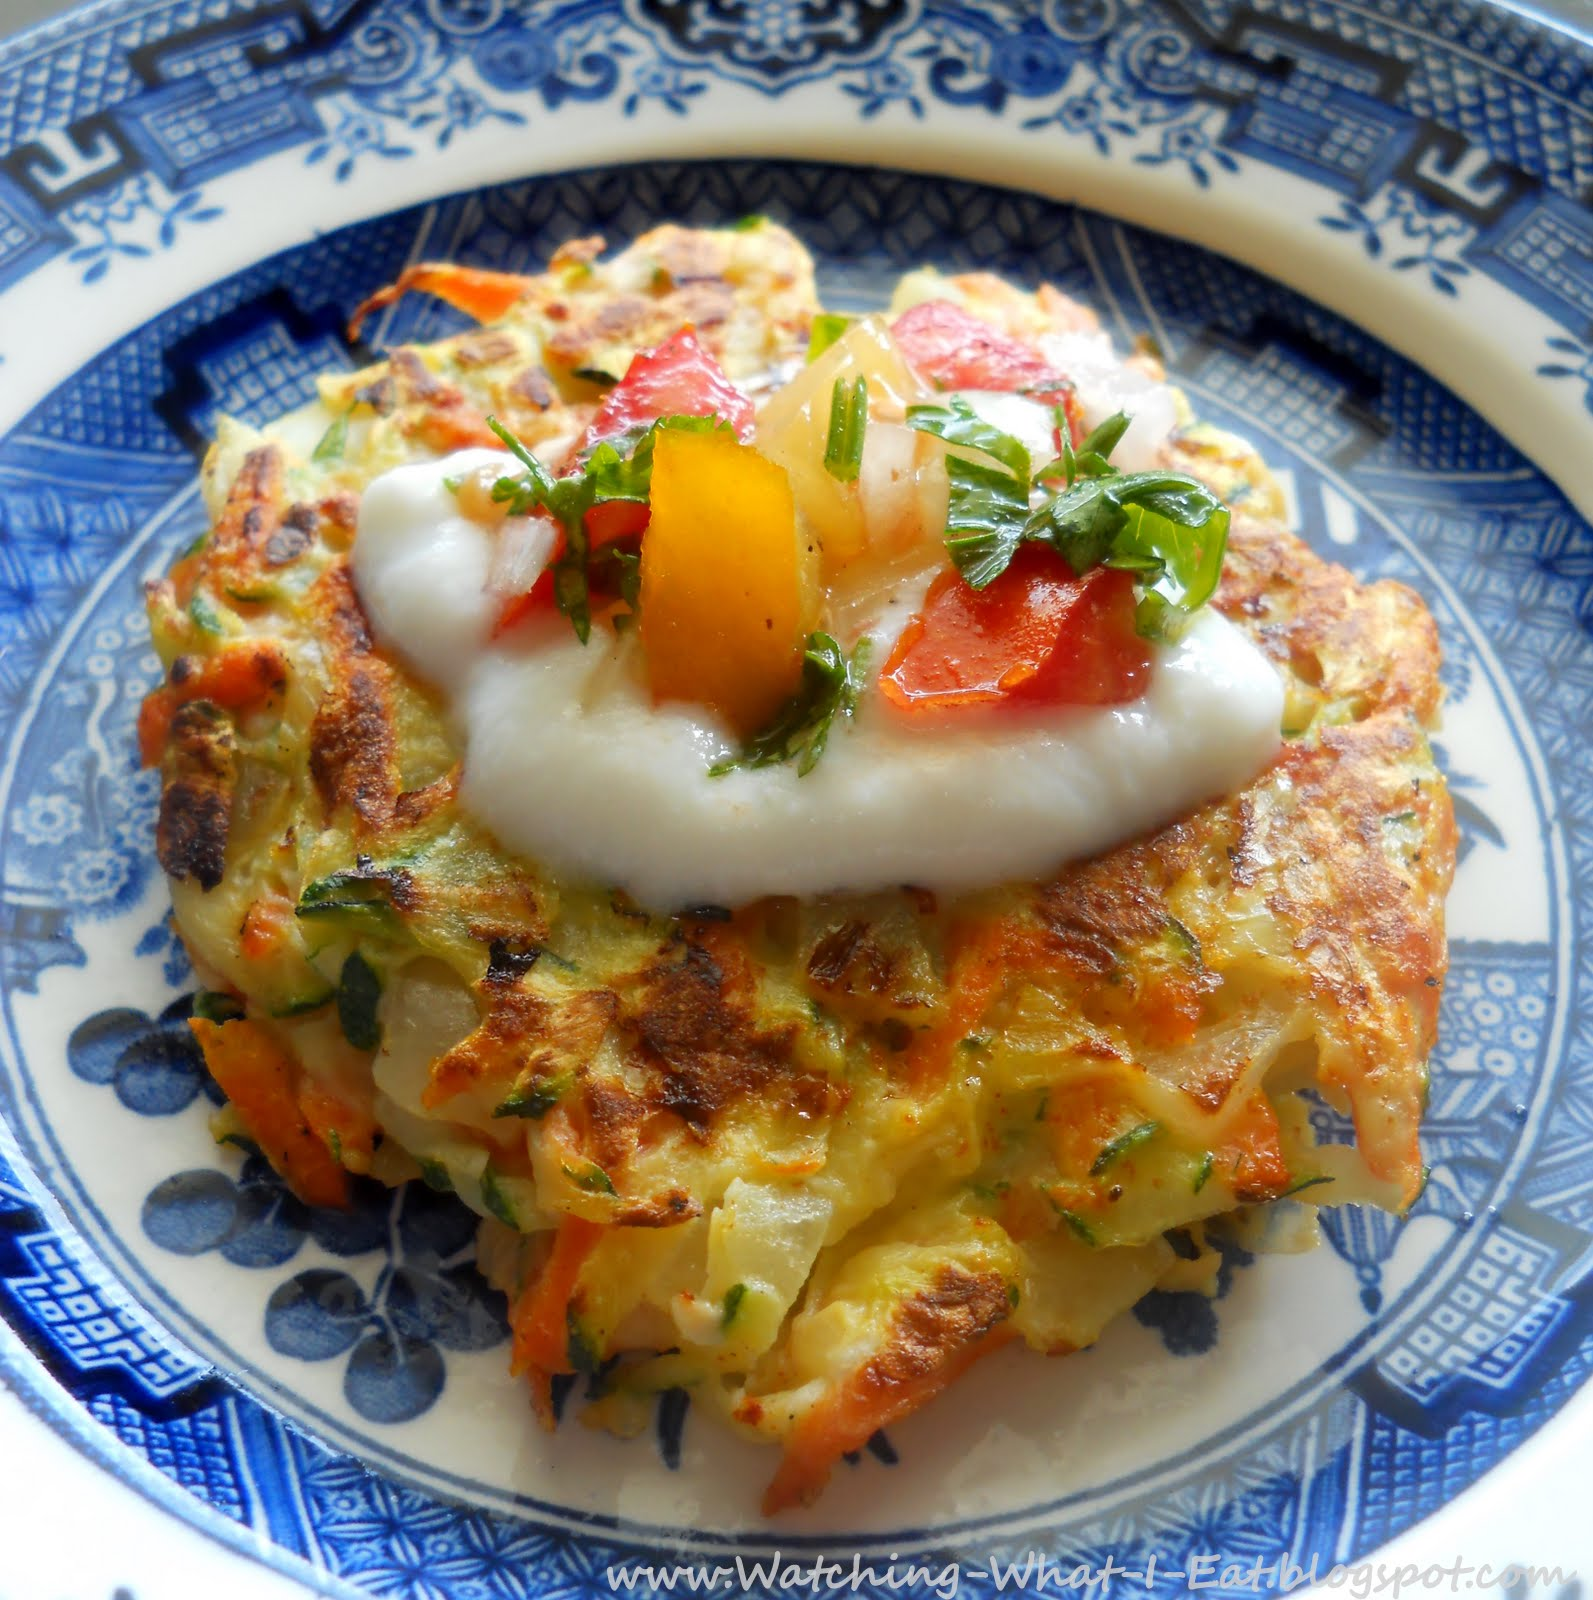 Watching What I Eat: Vegetable Rosti ~ crisp, golden, shredded veggie ...